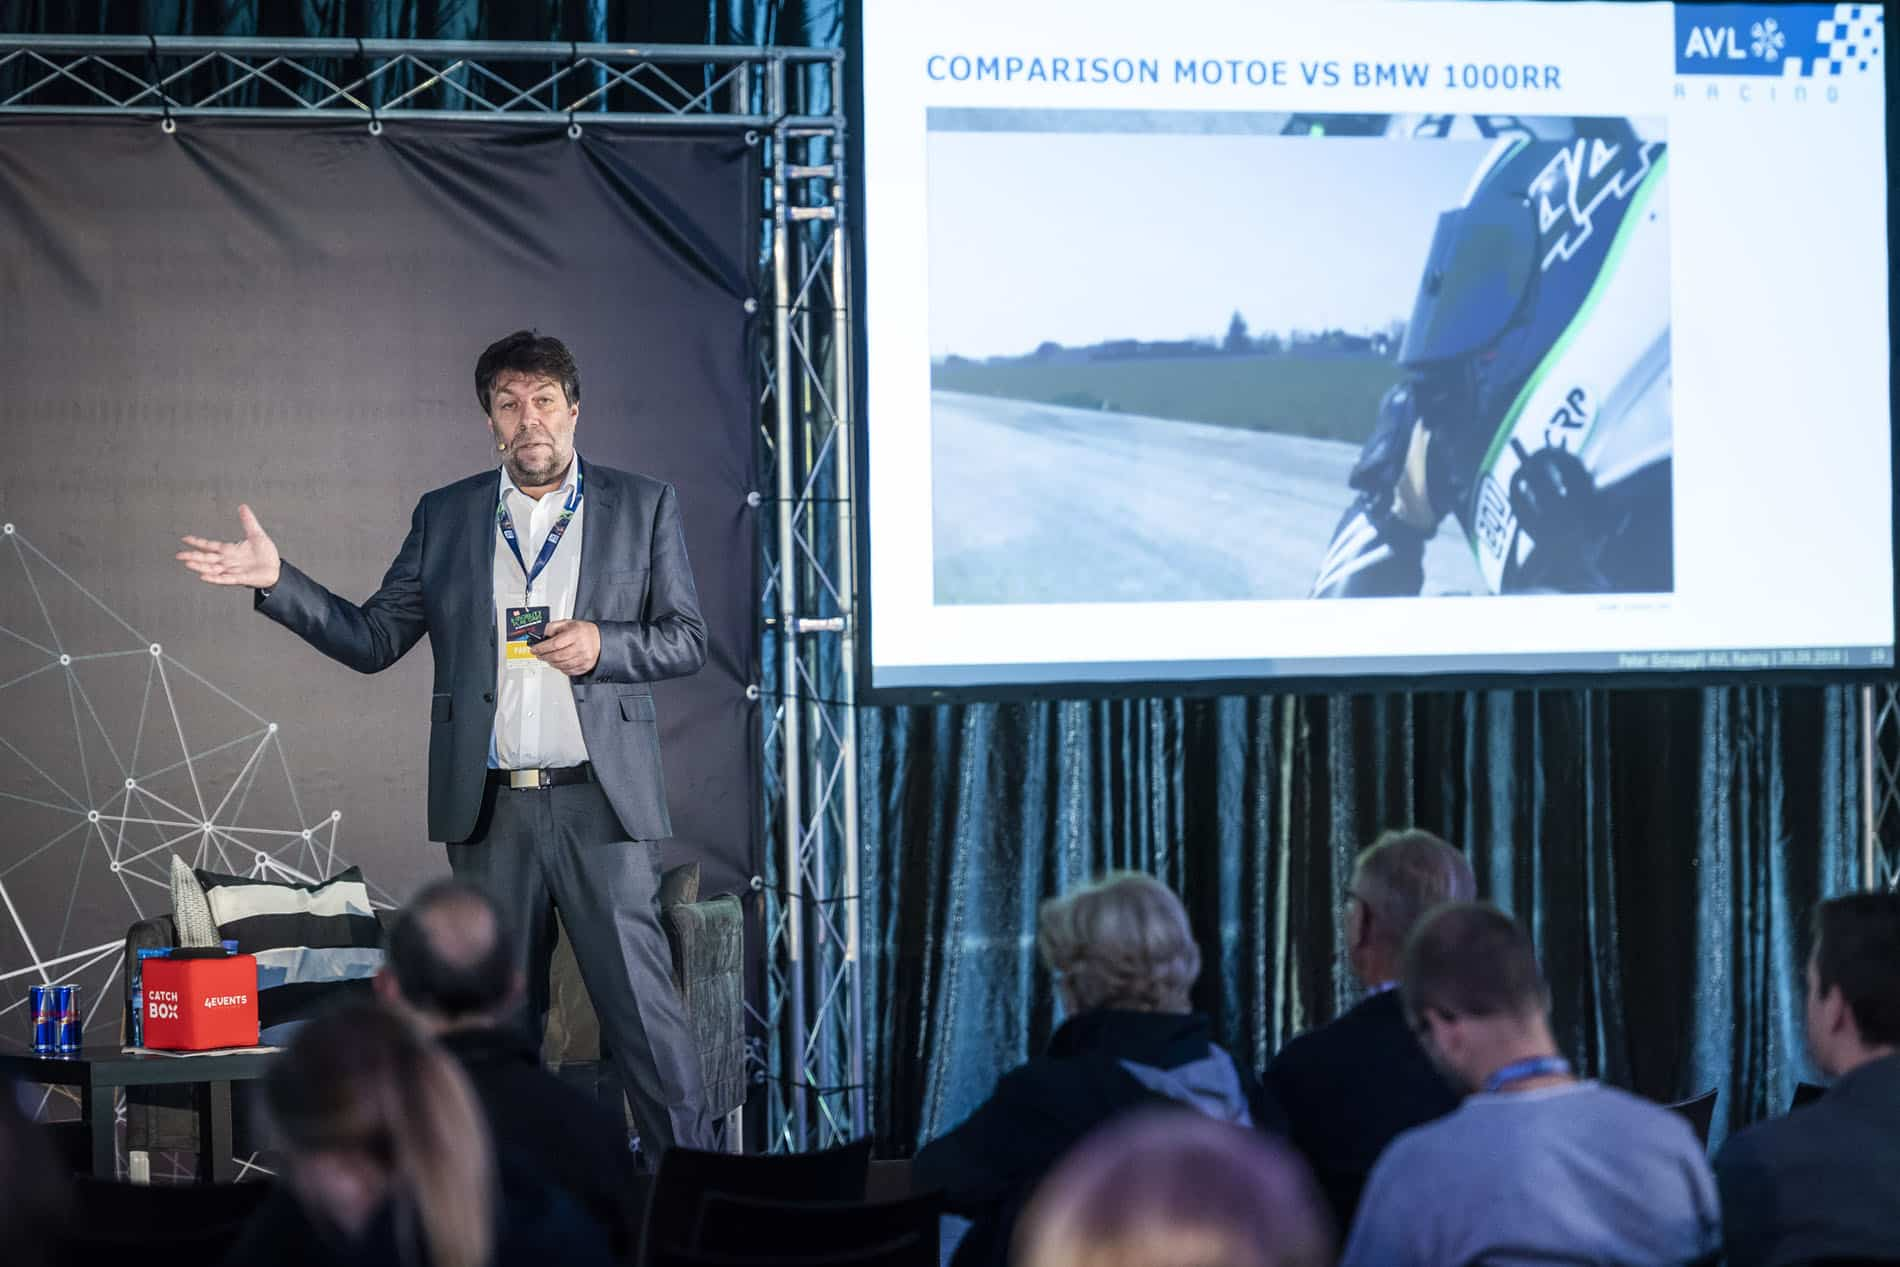 E-MOBILITY PLAY DAYS 2018 LOCKTEN 39.500 BESUCHER AN! » E Mobility Play Days 2018 Peter Schoeggl AVL © Philip Platzer Red Bull Content Pool